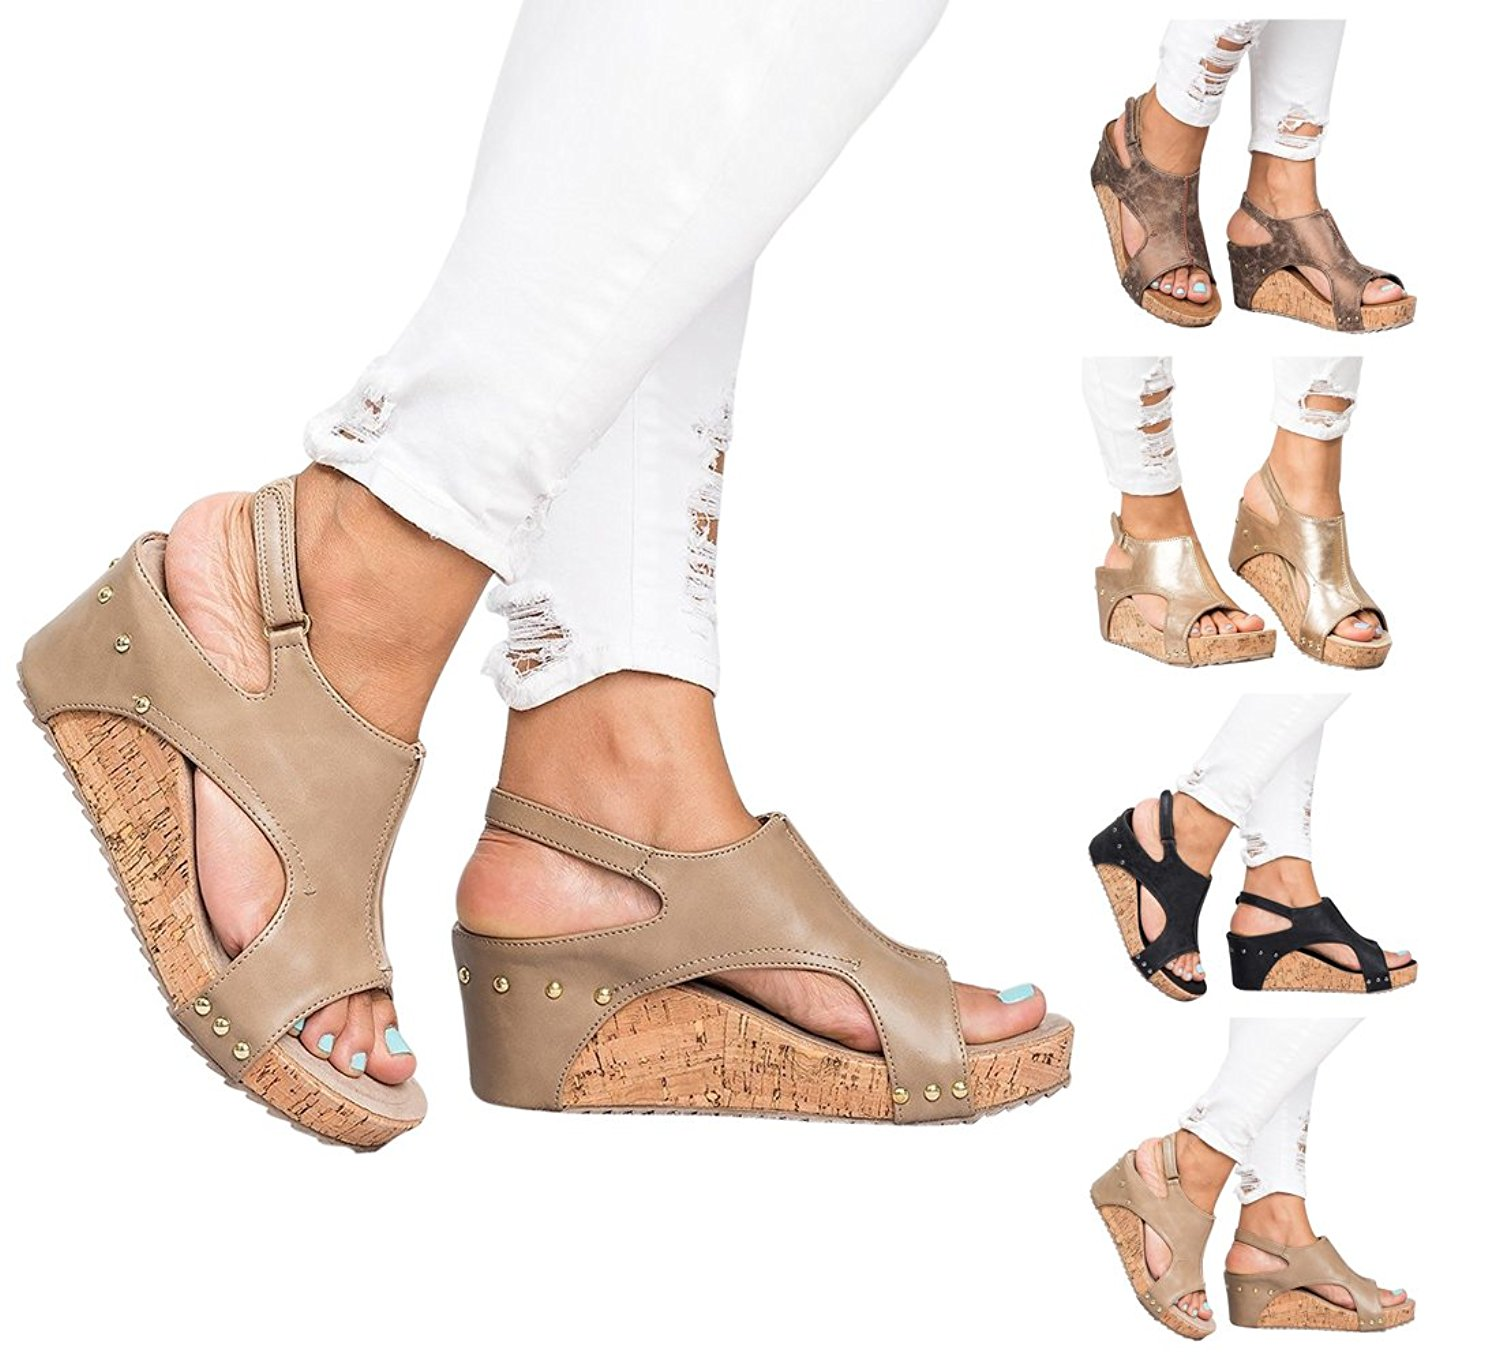 97b6cca3596 Get Quotations · Royou Yiuoer Womens Sandals Espadrille Platform Wedge Sandals  Summer Strappy Gladiator Hook-Loop Casual Summer